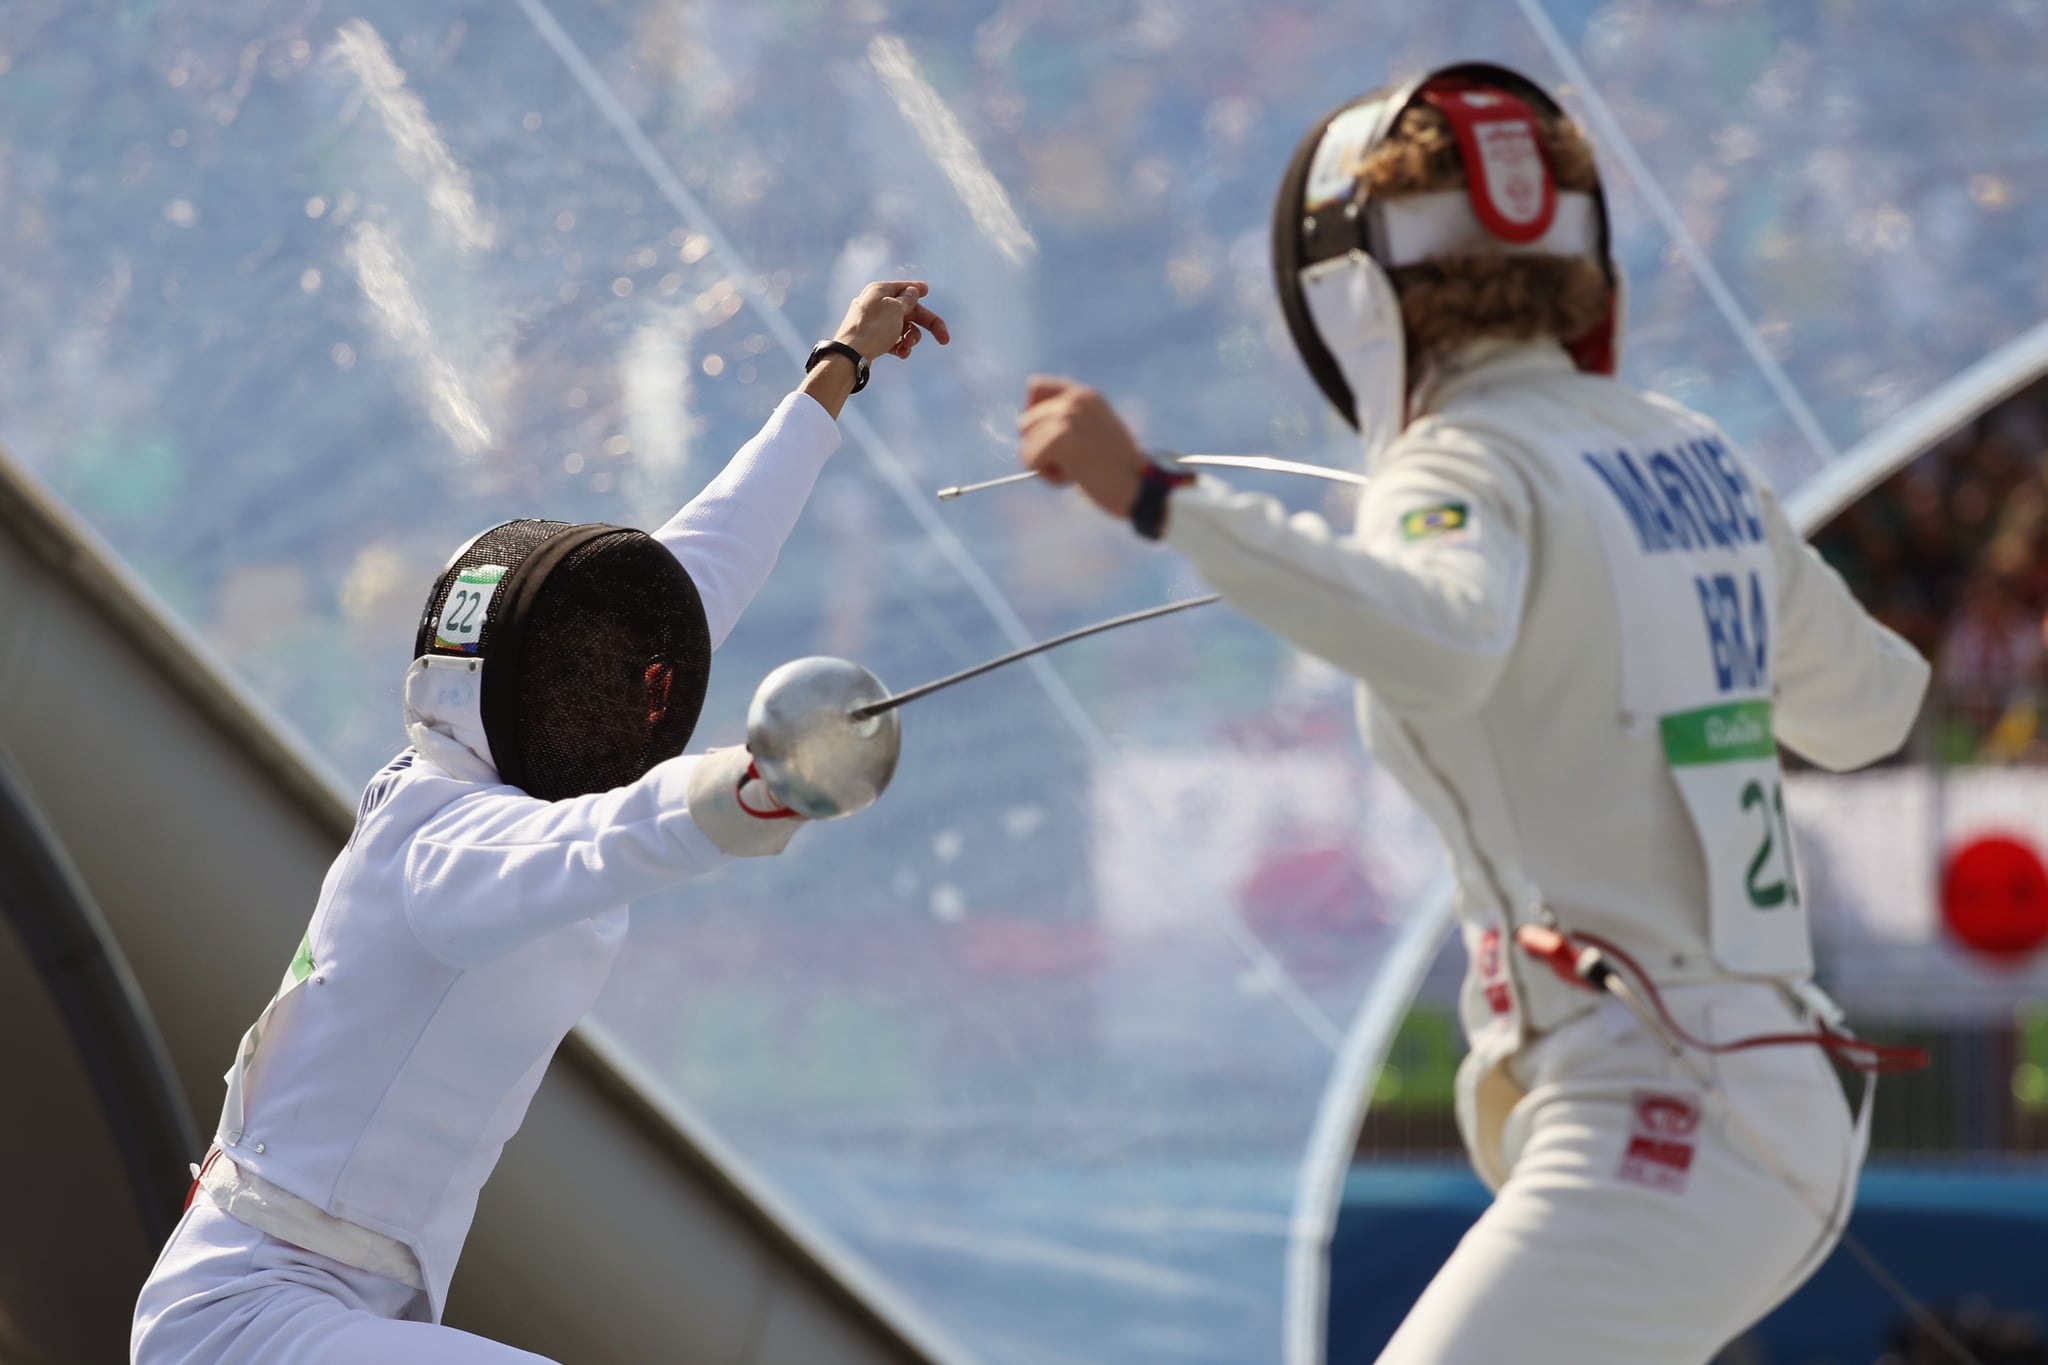 RIO DE JANEIRO, BRAZIL - AUGUST 19:  Anna Maliszewska of Poland (L) and Yane Marcia Marques of Brazil compete during the Women's Fencing Modern Pentathlon on Day 14 of the Rio 2016 Olympic Games at the Deodouro Stadium on August 19, 2016 in Rio de Janeiro, Brazil.  (Photo by Rob Carr/Getty Images)